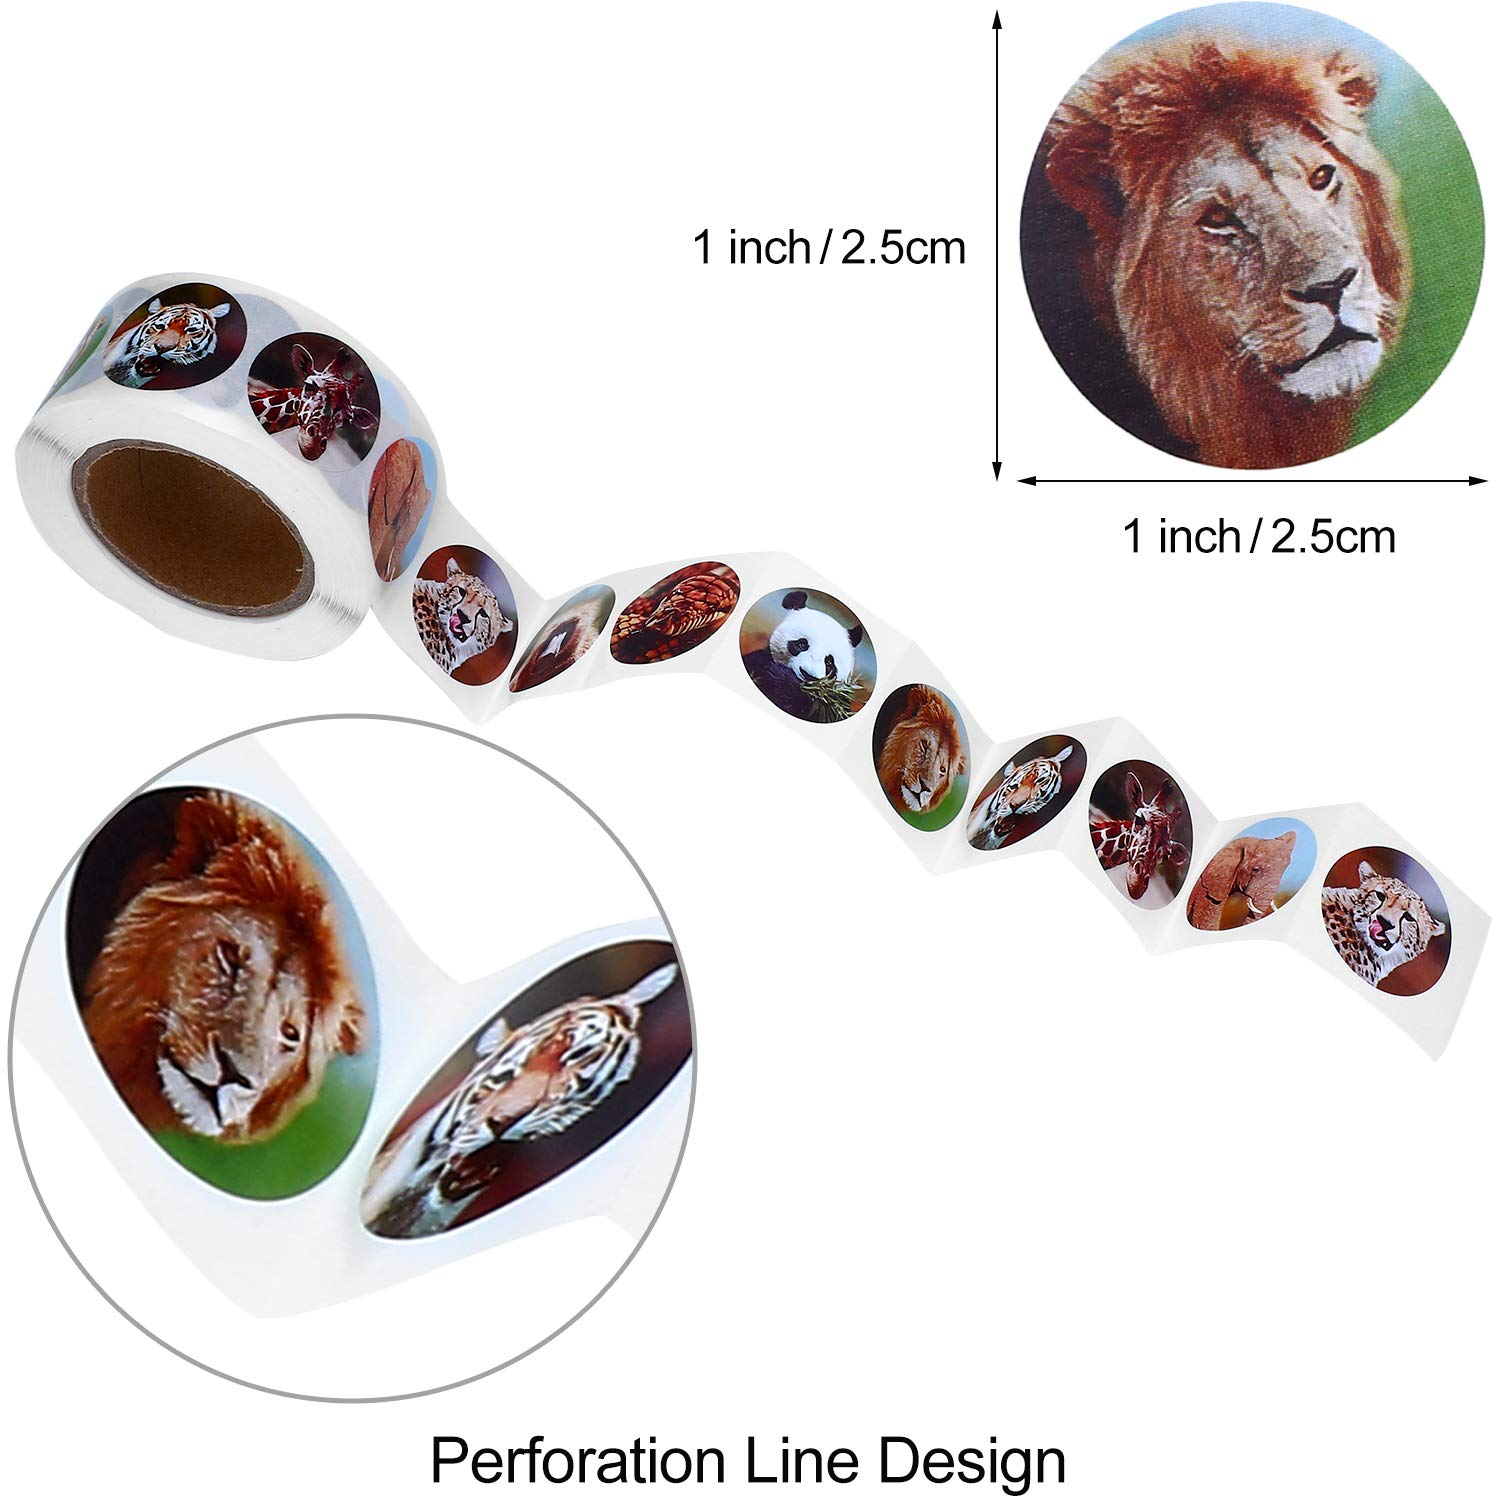 Outus 1000 Pieces Zoo Animal Stickers Self-Adhesive Animal Sticker Roll Animal Pattern Label Sticker for Kids Awards Party Supplies Craft Decoration